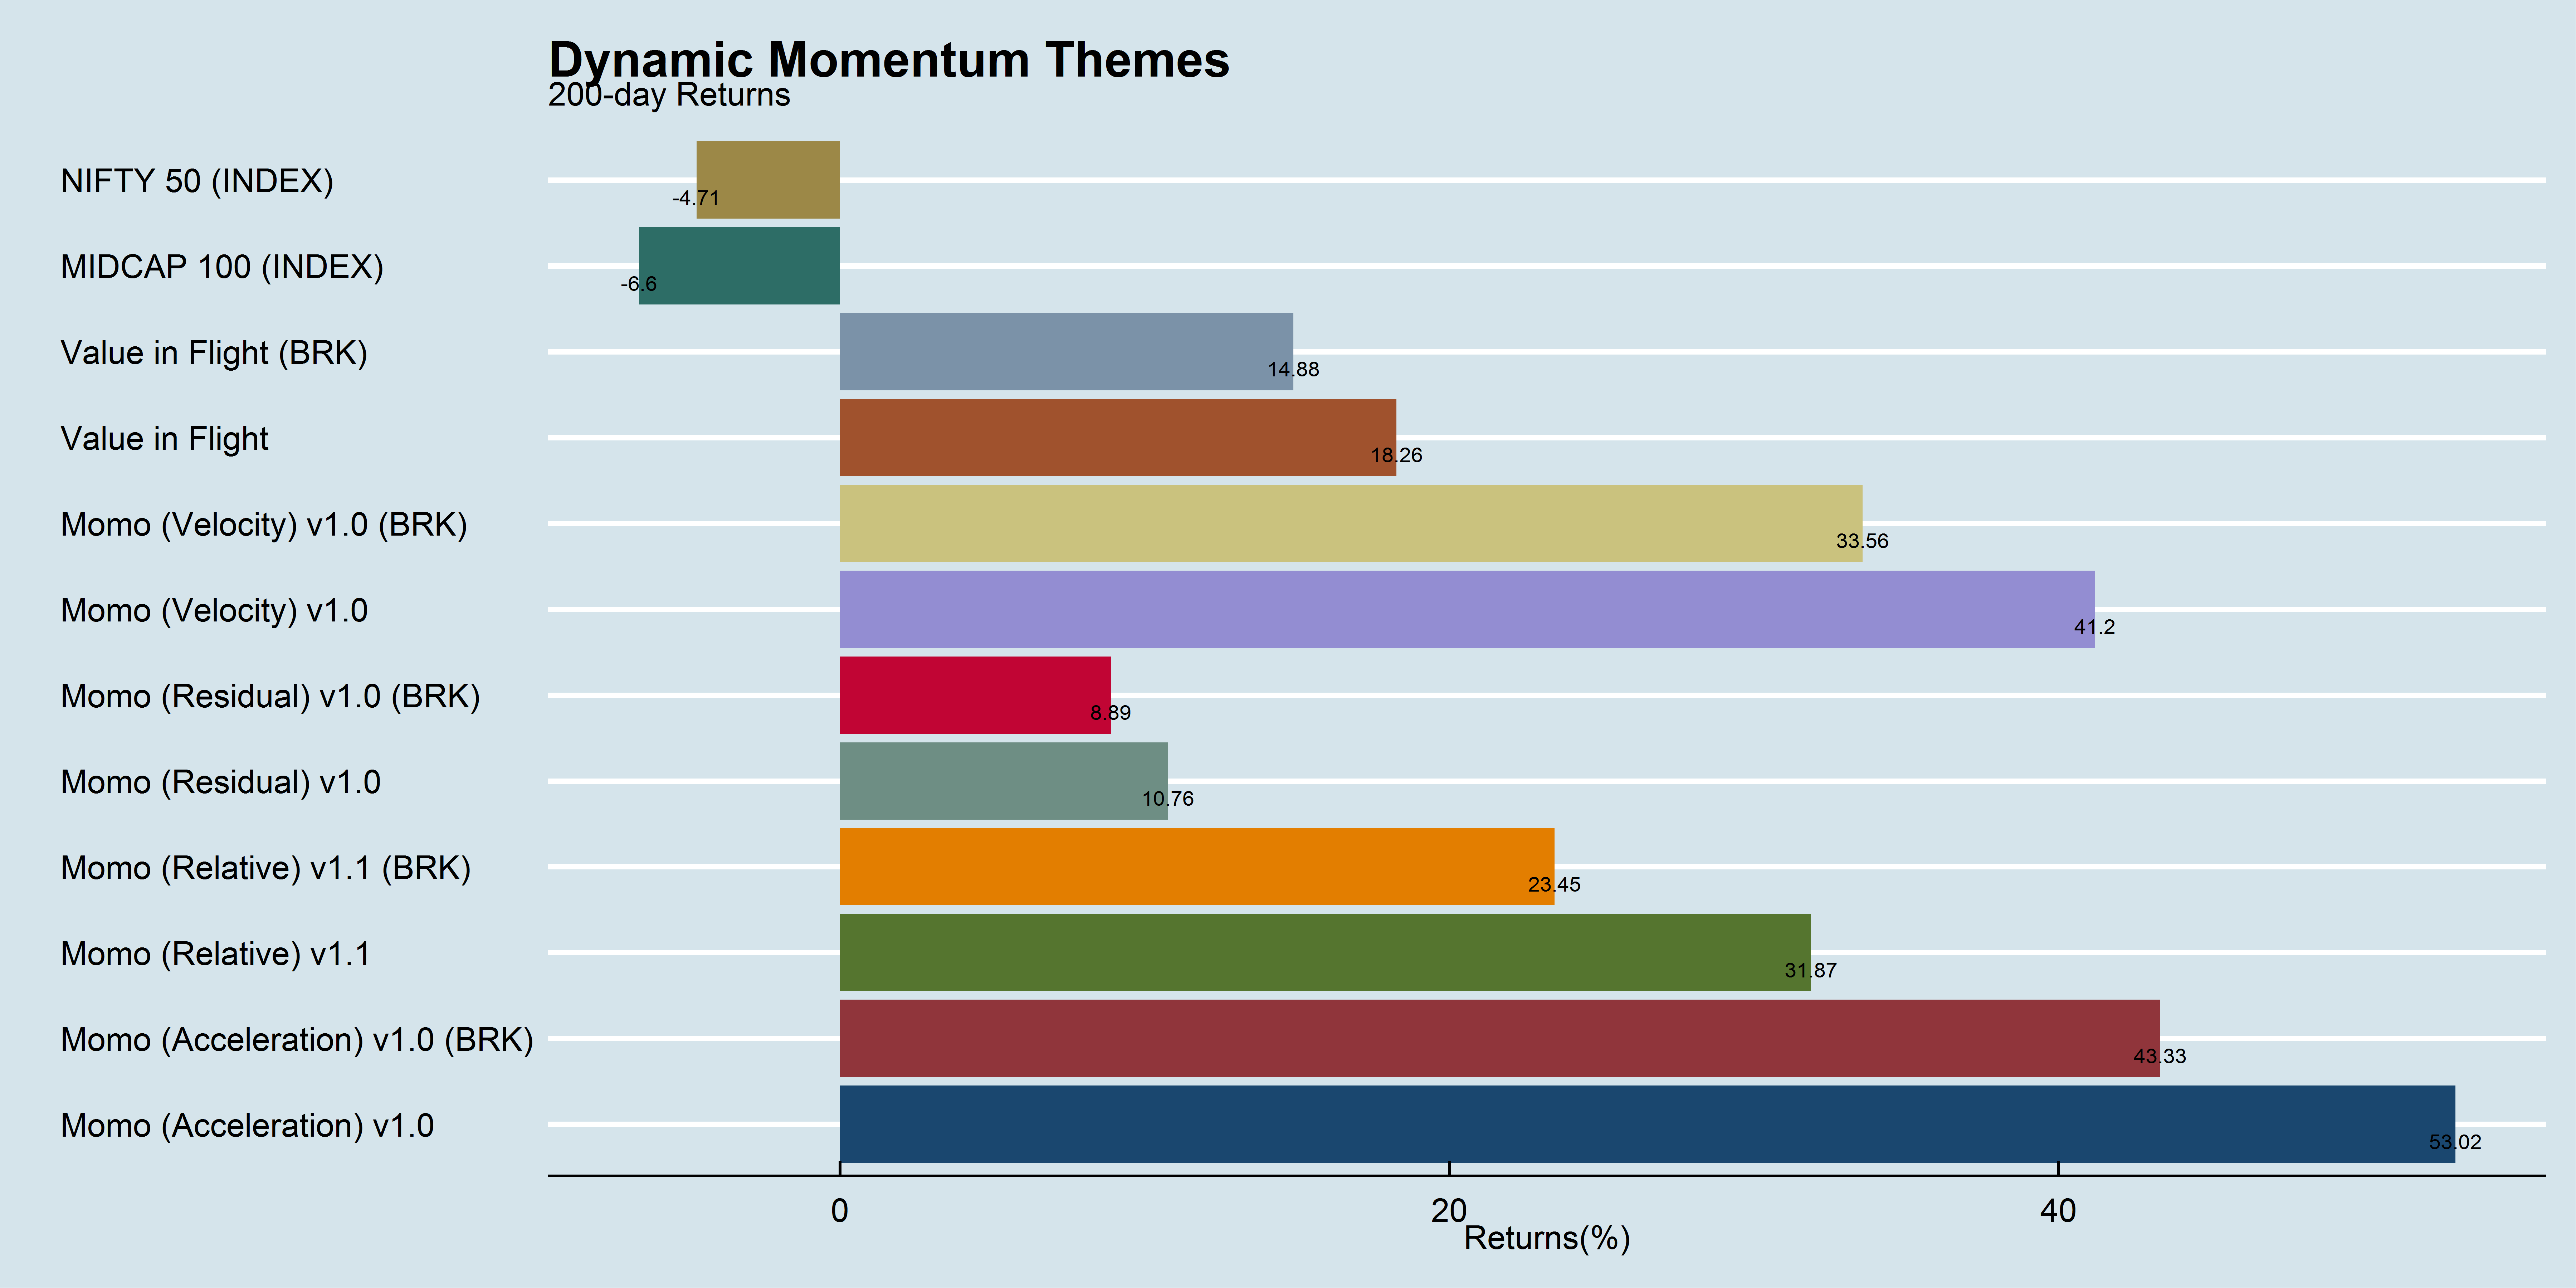 Dynamic Momentum Themes 200-day performance